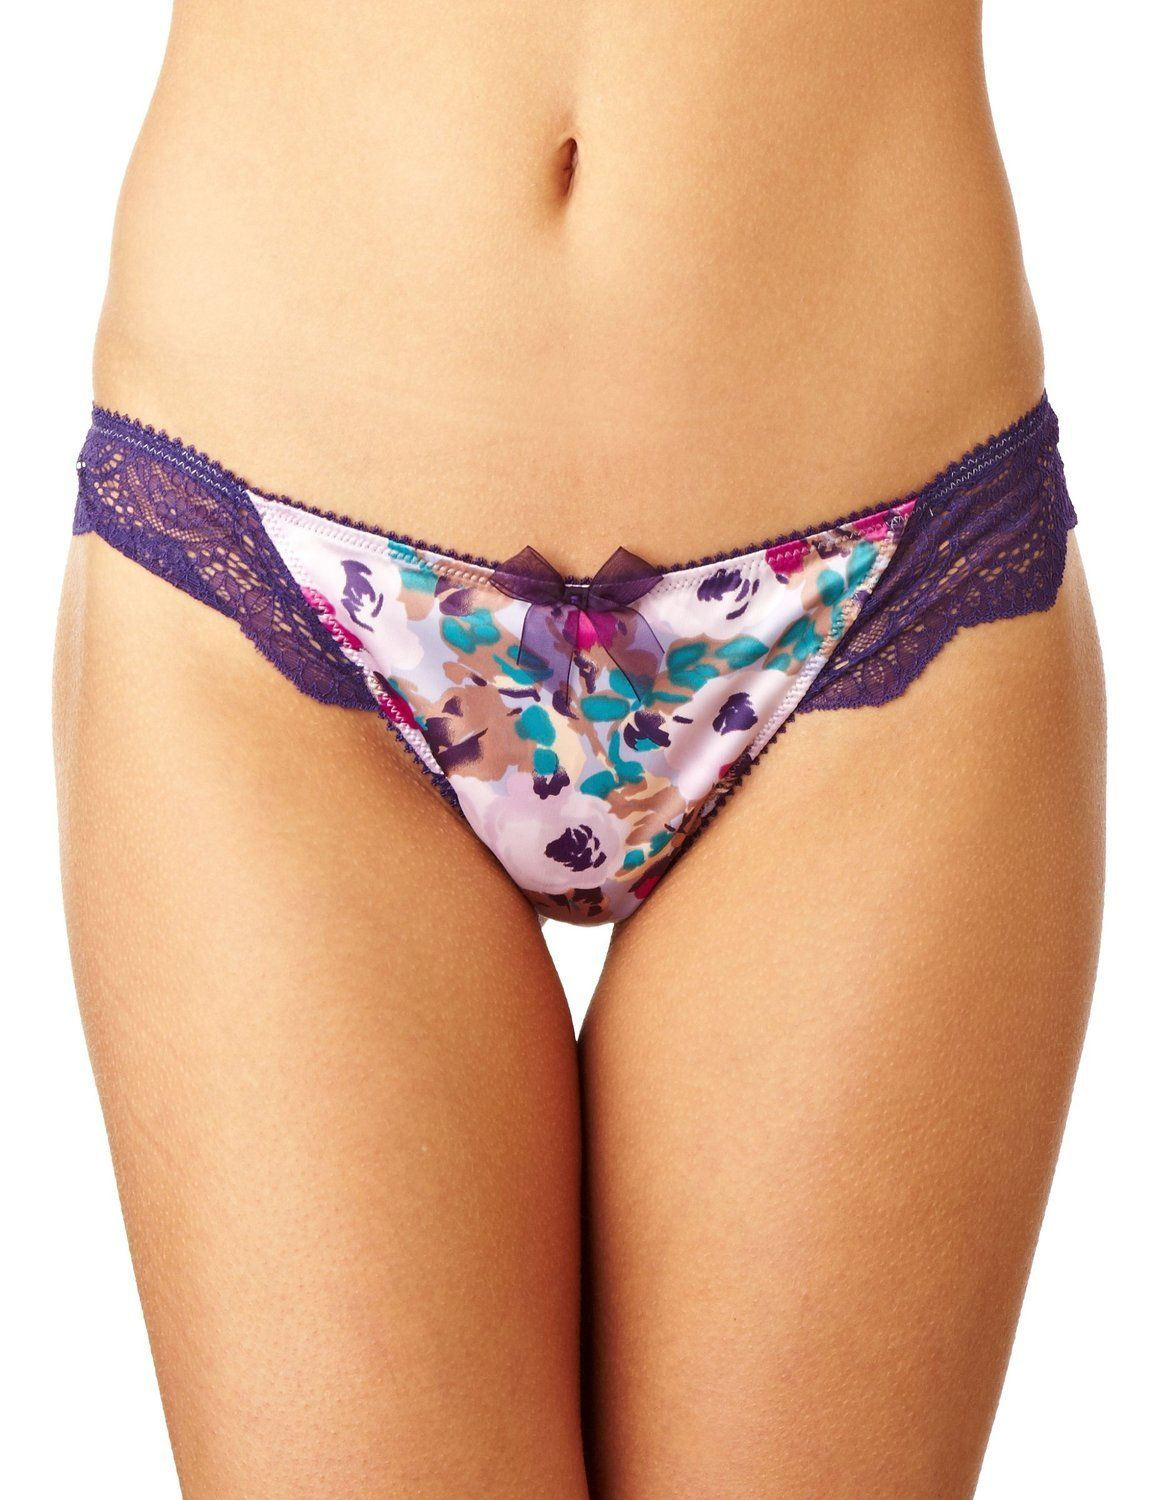 Gossard Lingerie Glossies Floral Frenzy Short Brief Knickers 8634 Pink Floral Woodlandhideawaypark Co Uk